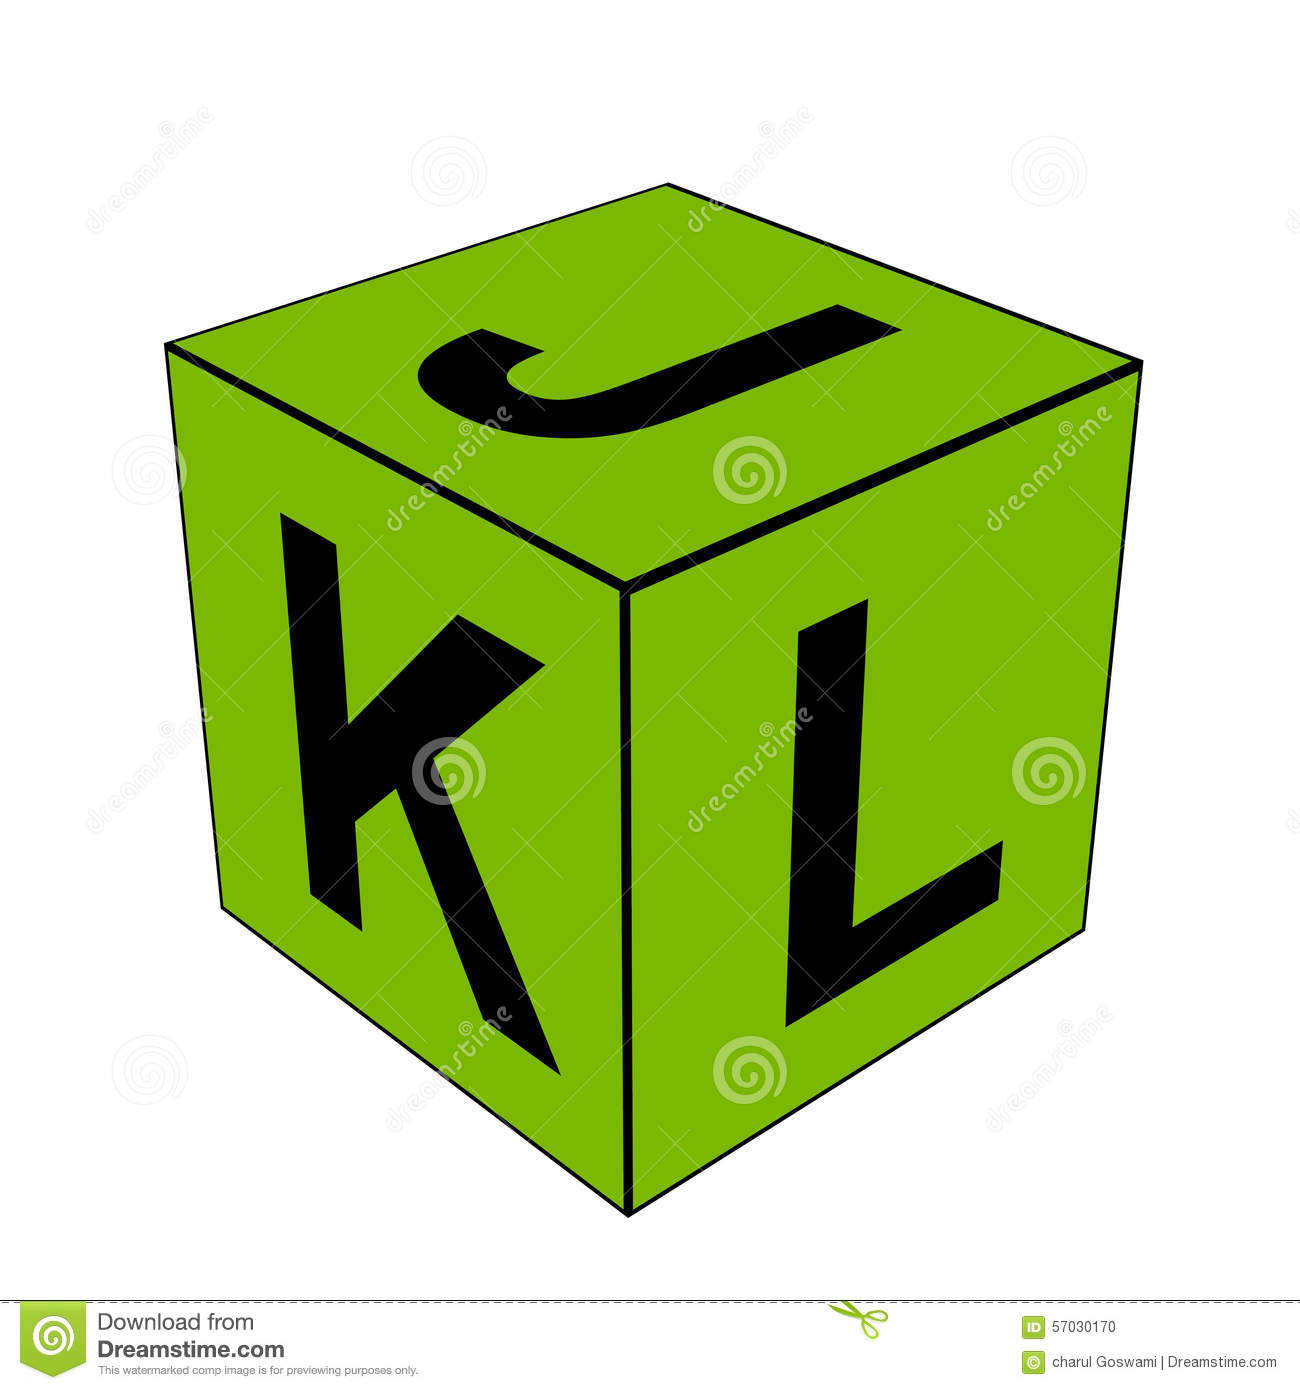 Alphabet Letter JKL Dice Stock Illustration - Image: 57030170